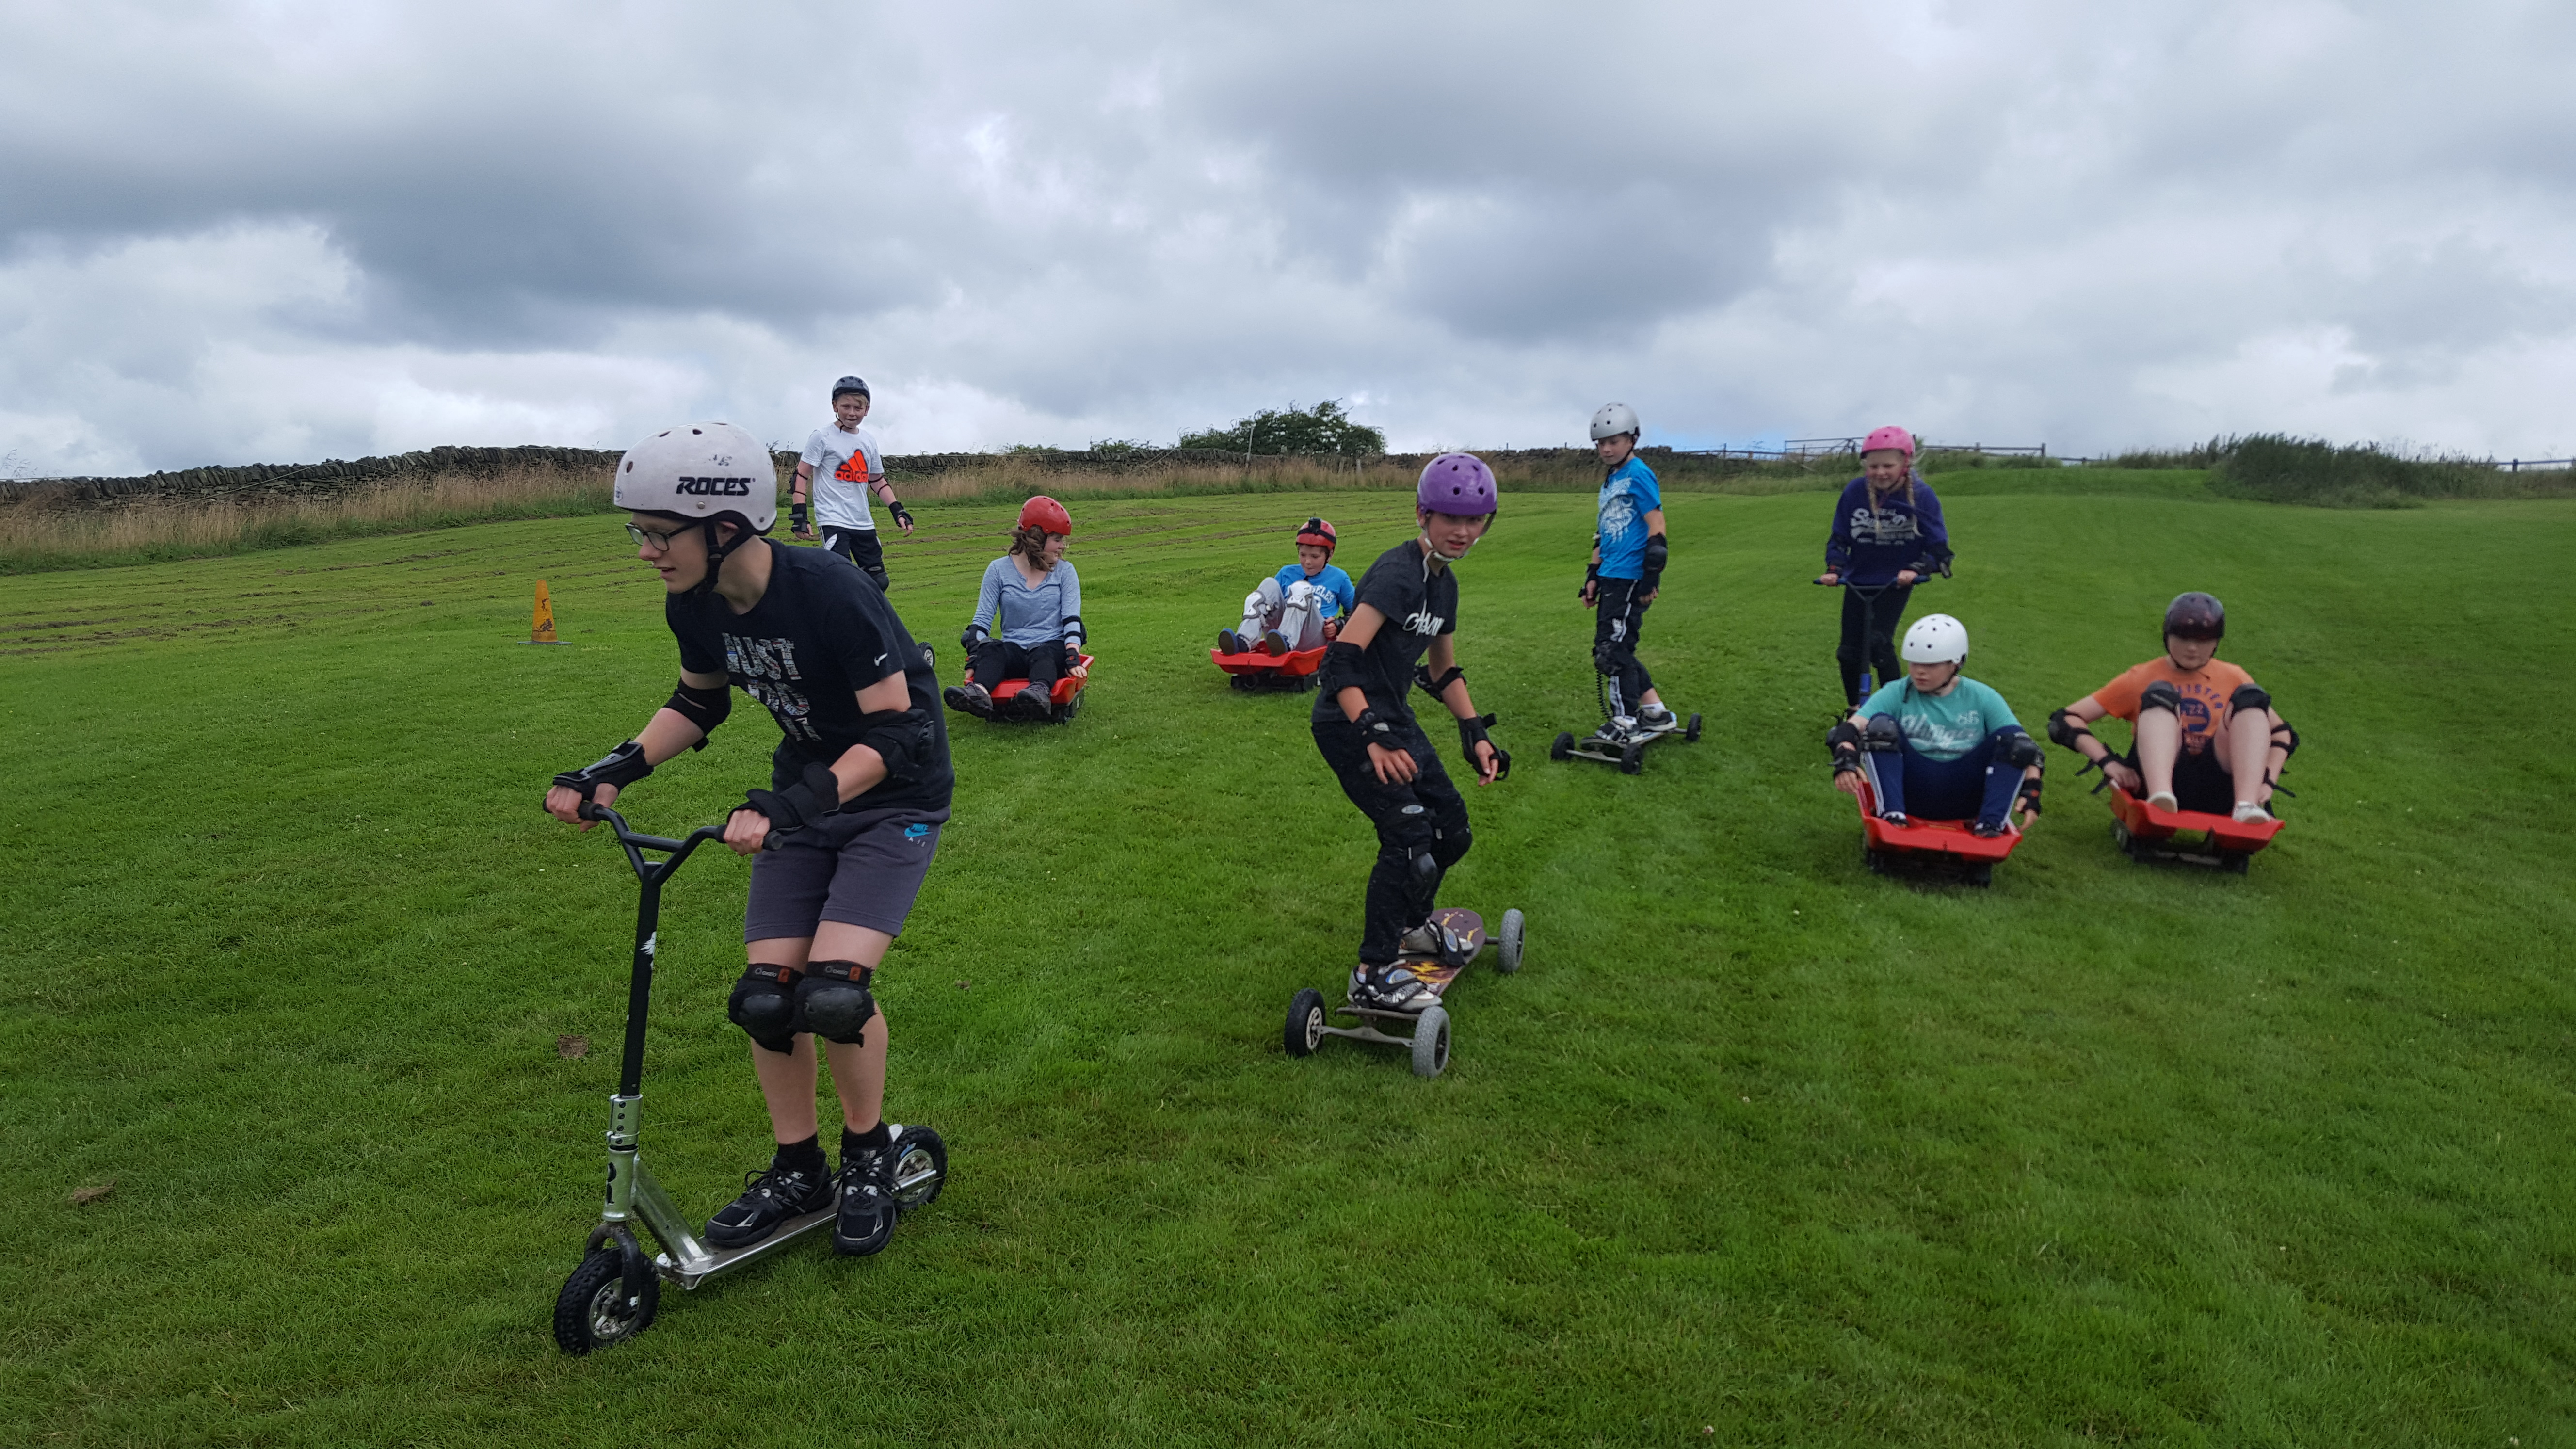 Mountainboarding grass sledging and dirt scooters